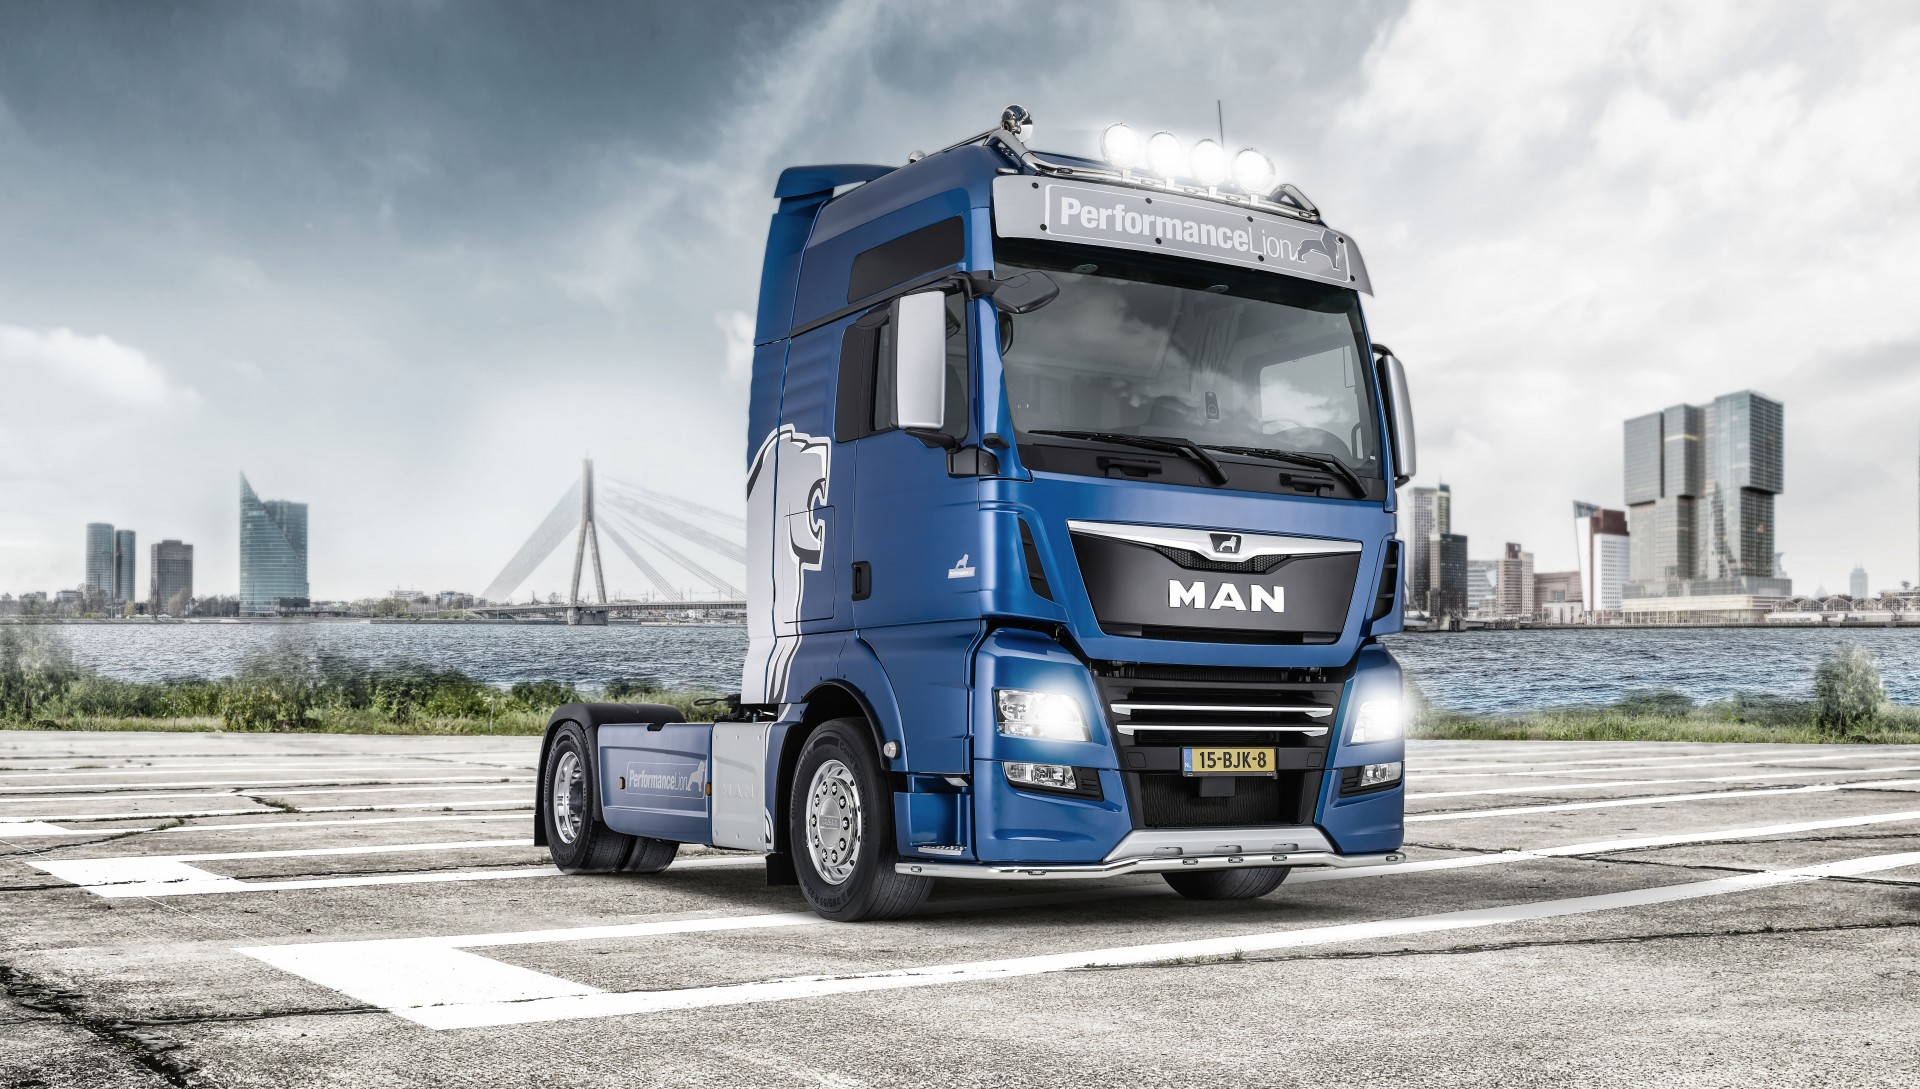 MAN TGX PerformanceLion